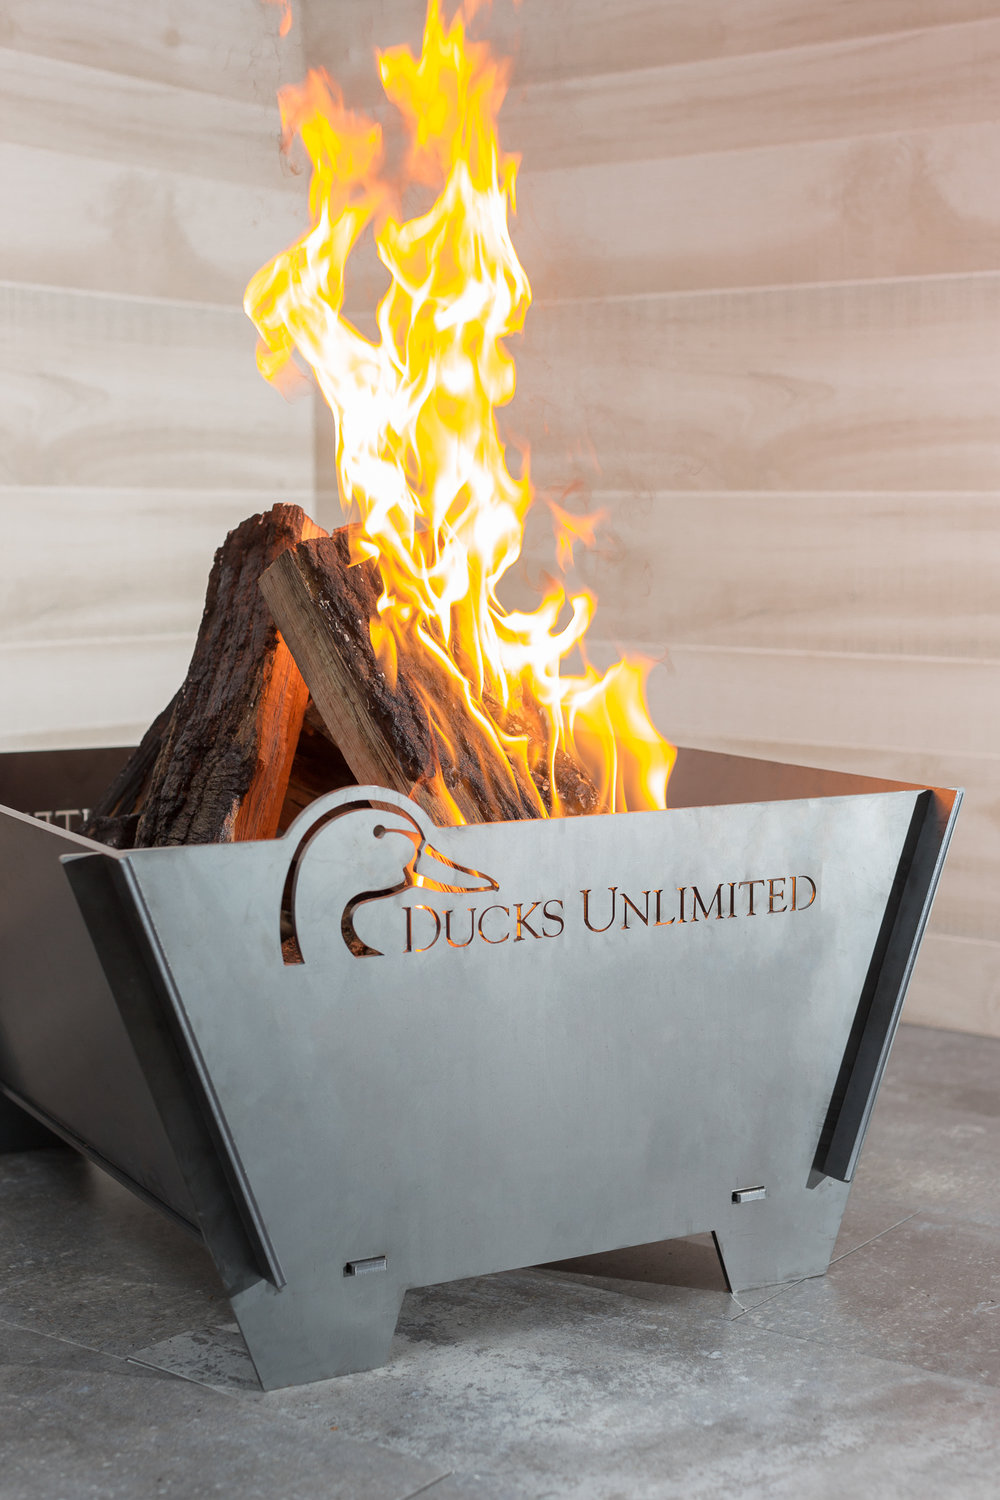 Kansas City commercial product photographer | Metal Fire Pit Photo | Commercial Studio Photographer KC www.anthem-photo.com 3.jpg